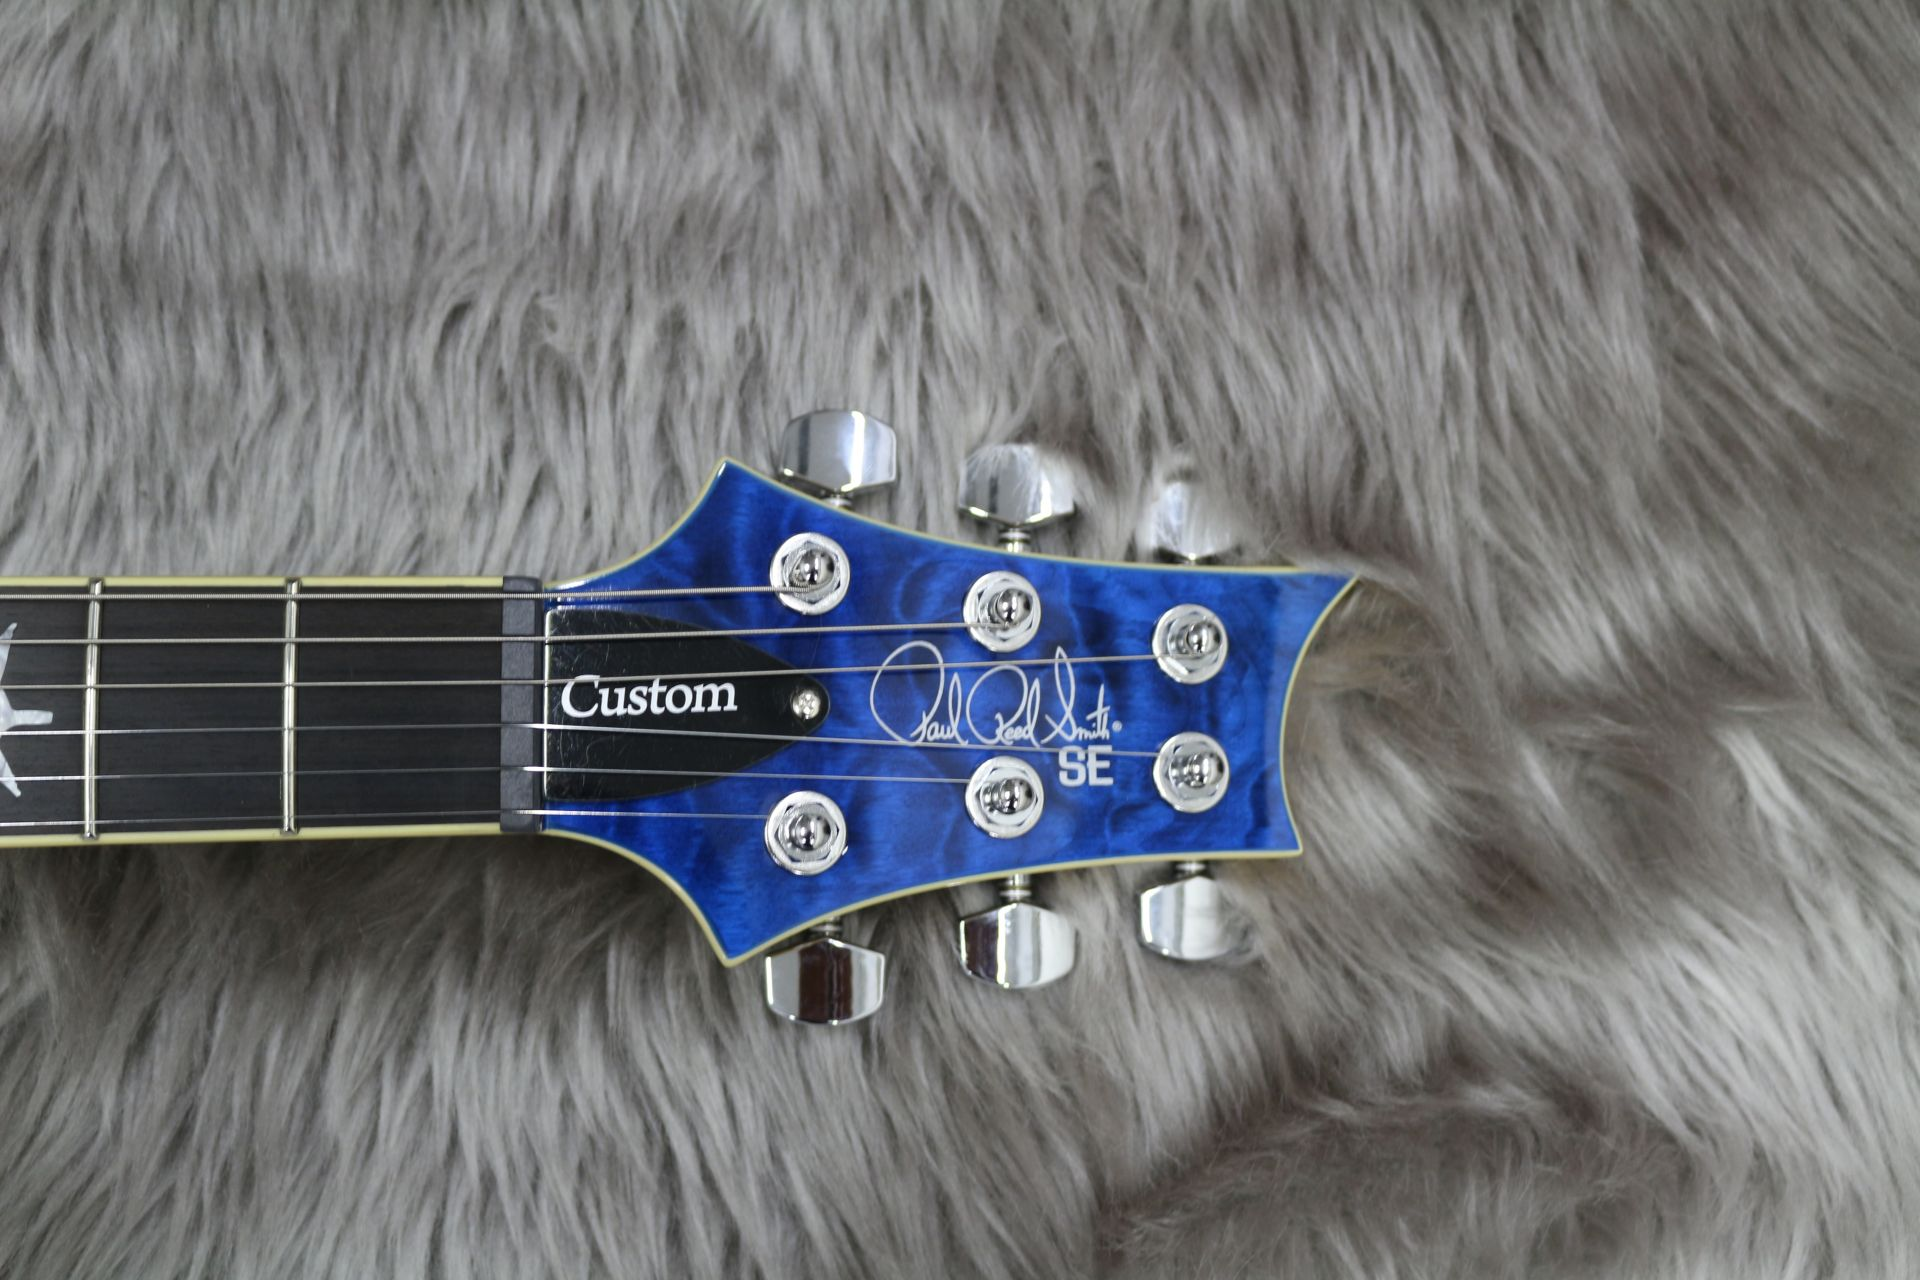 SE CUSTOM 24 QM LTD – Paul Reed Smithのヘッド画像